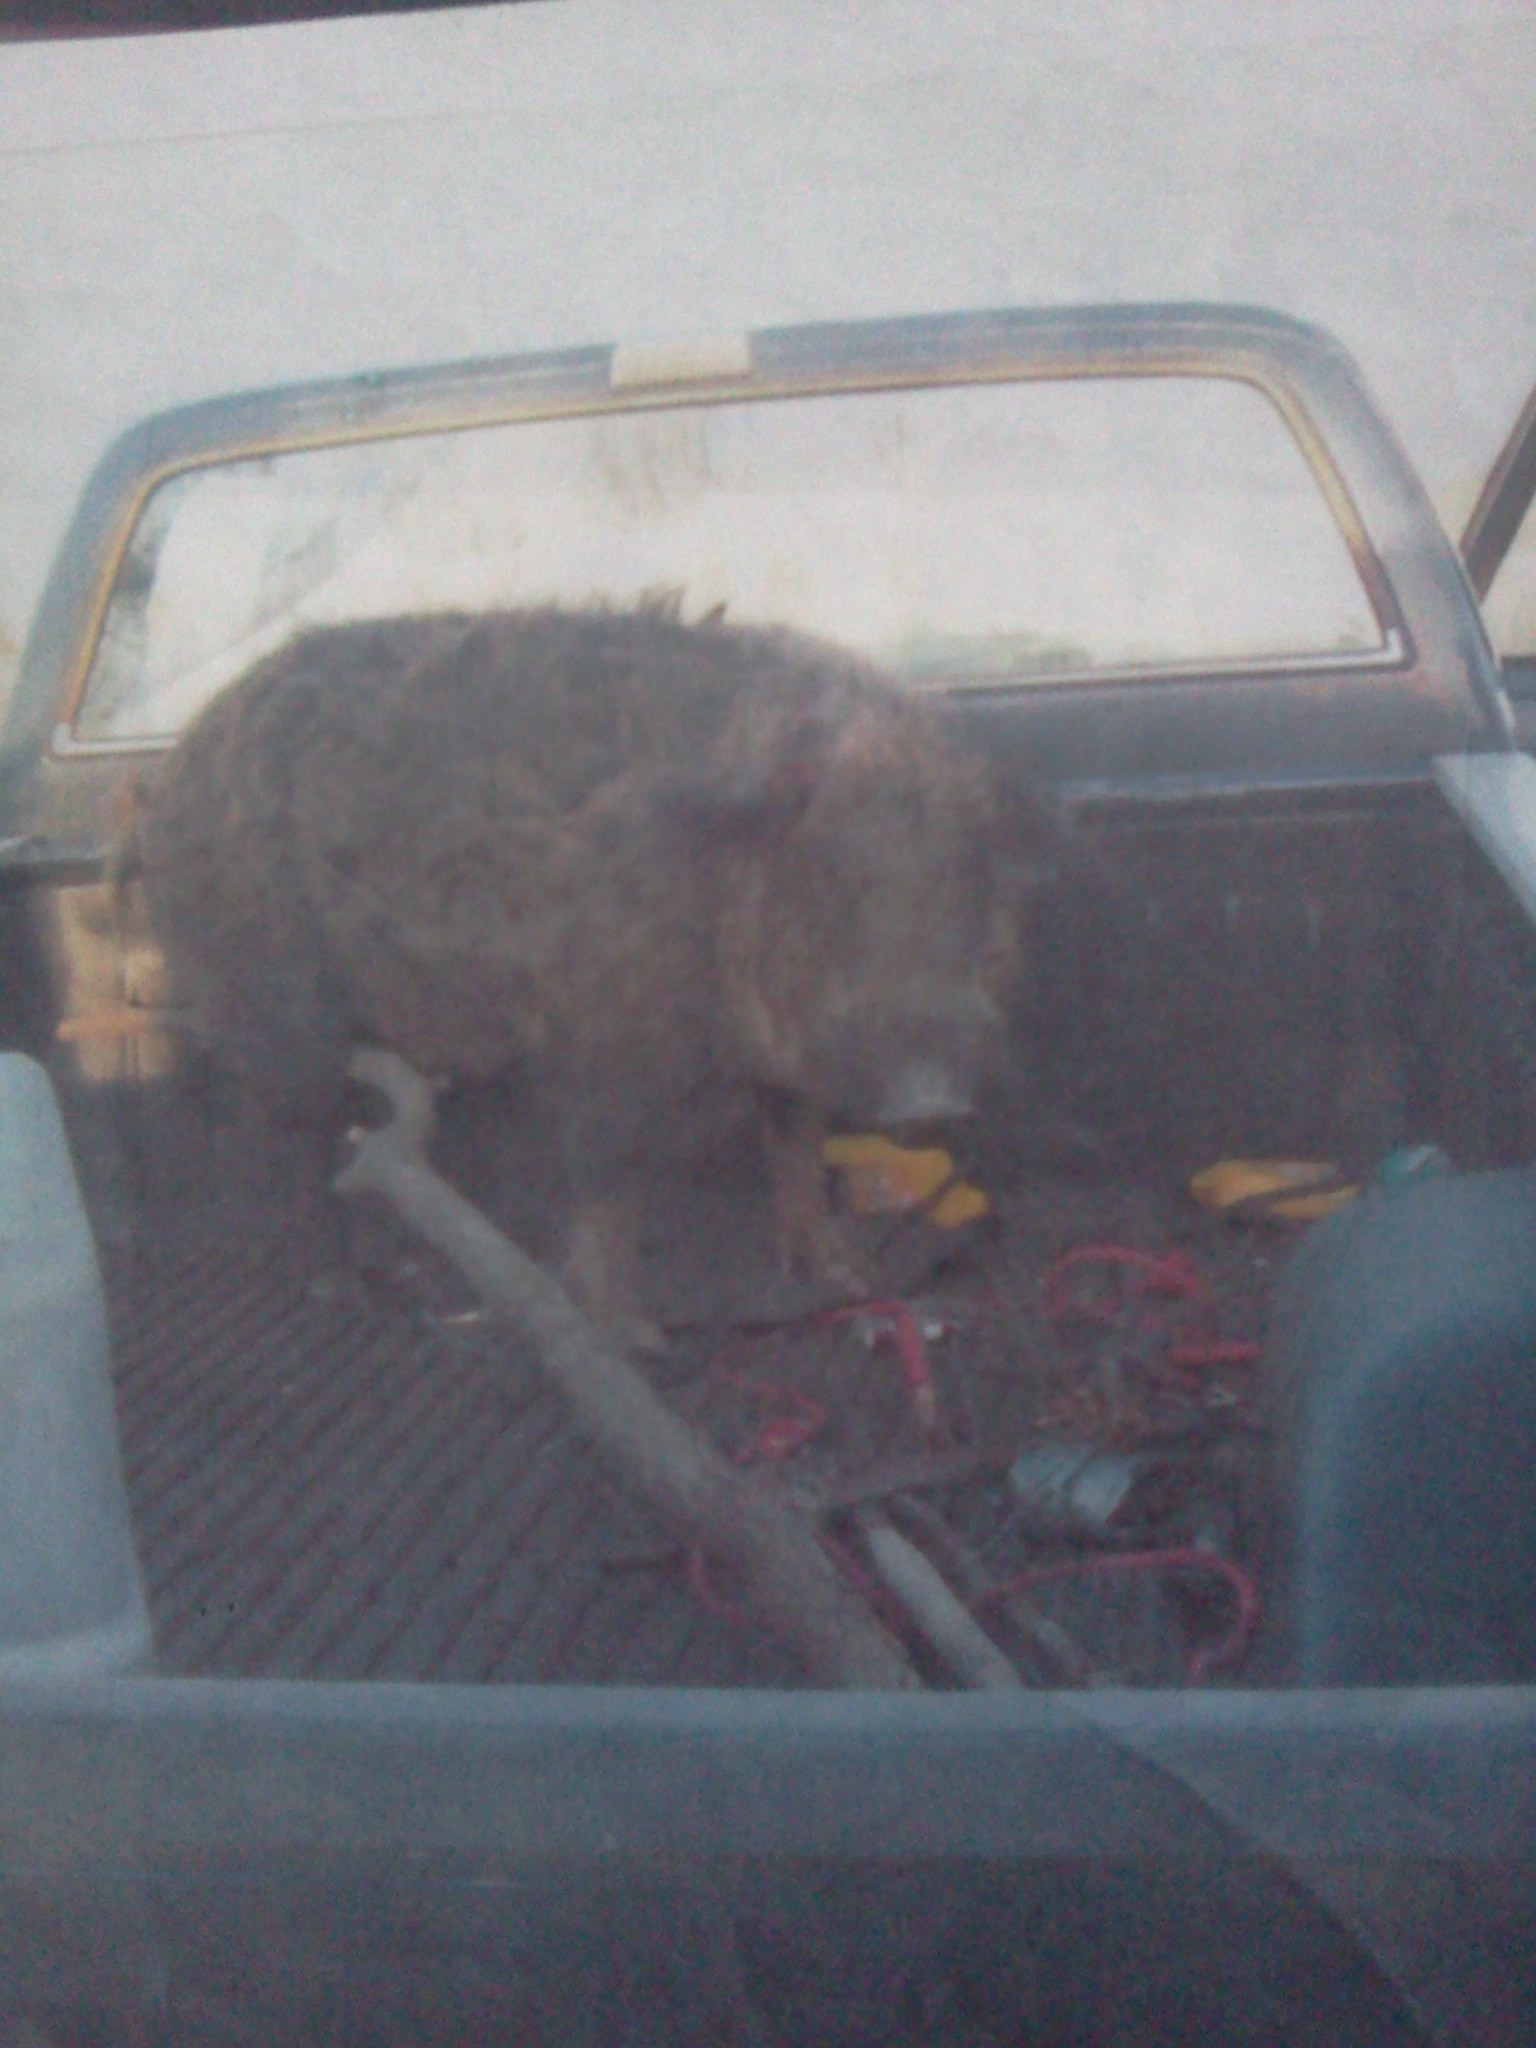 Hunting Big boar i talked into the back of my truck!